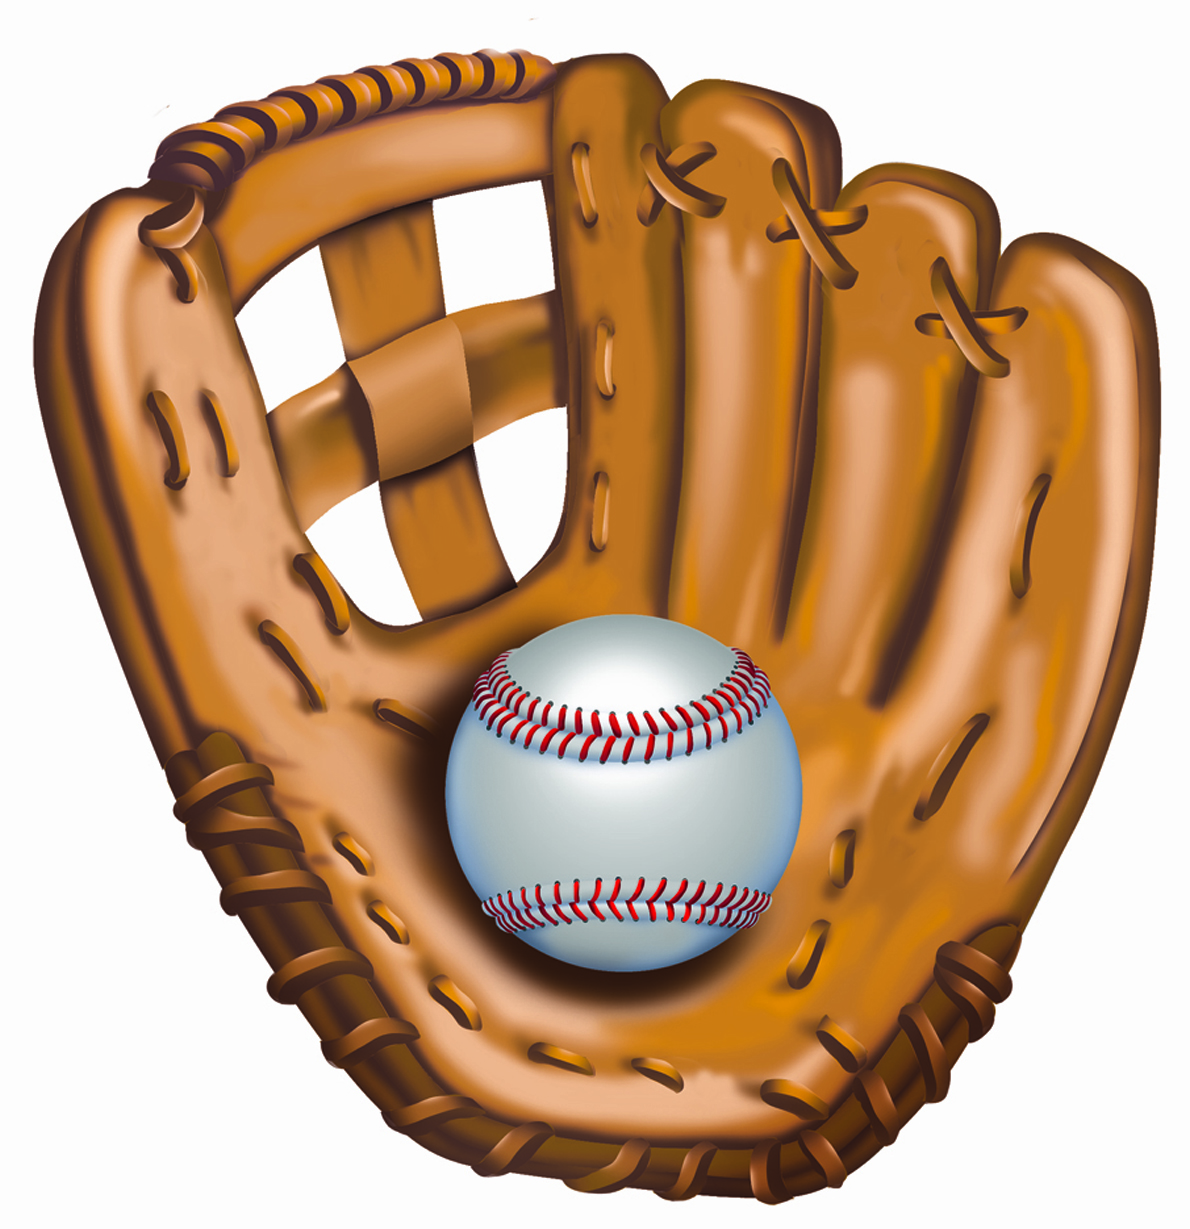 Cute baby clipart baseball mitt and ball transparent back free download Collection of 14 free Bat clipart baseball glove sales ... free download